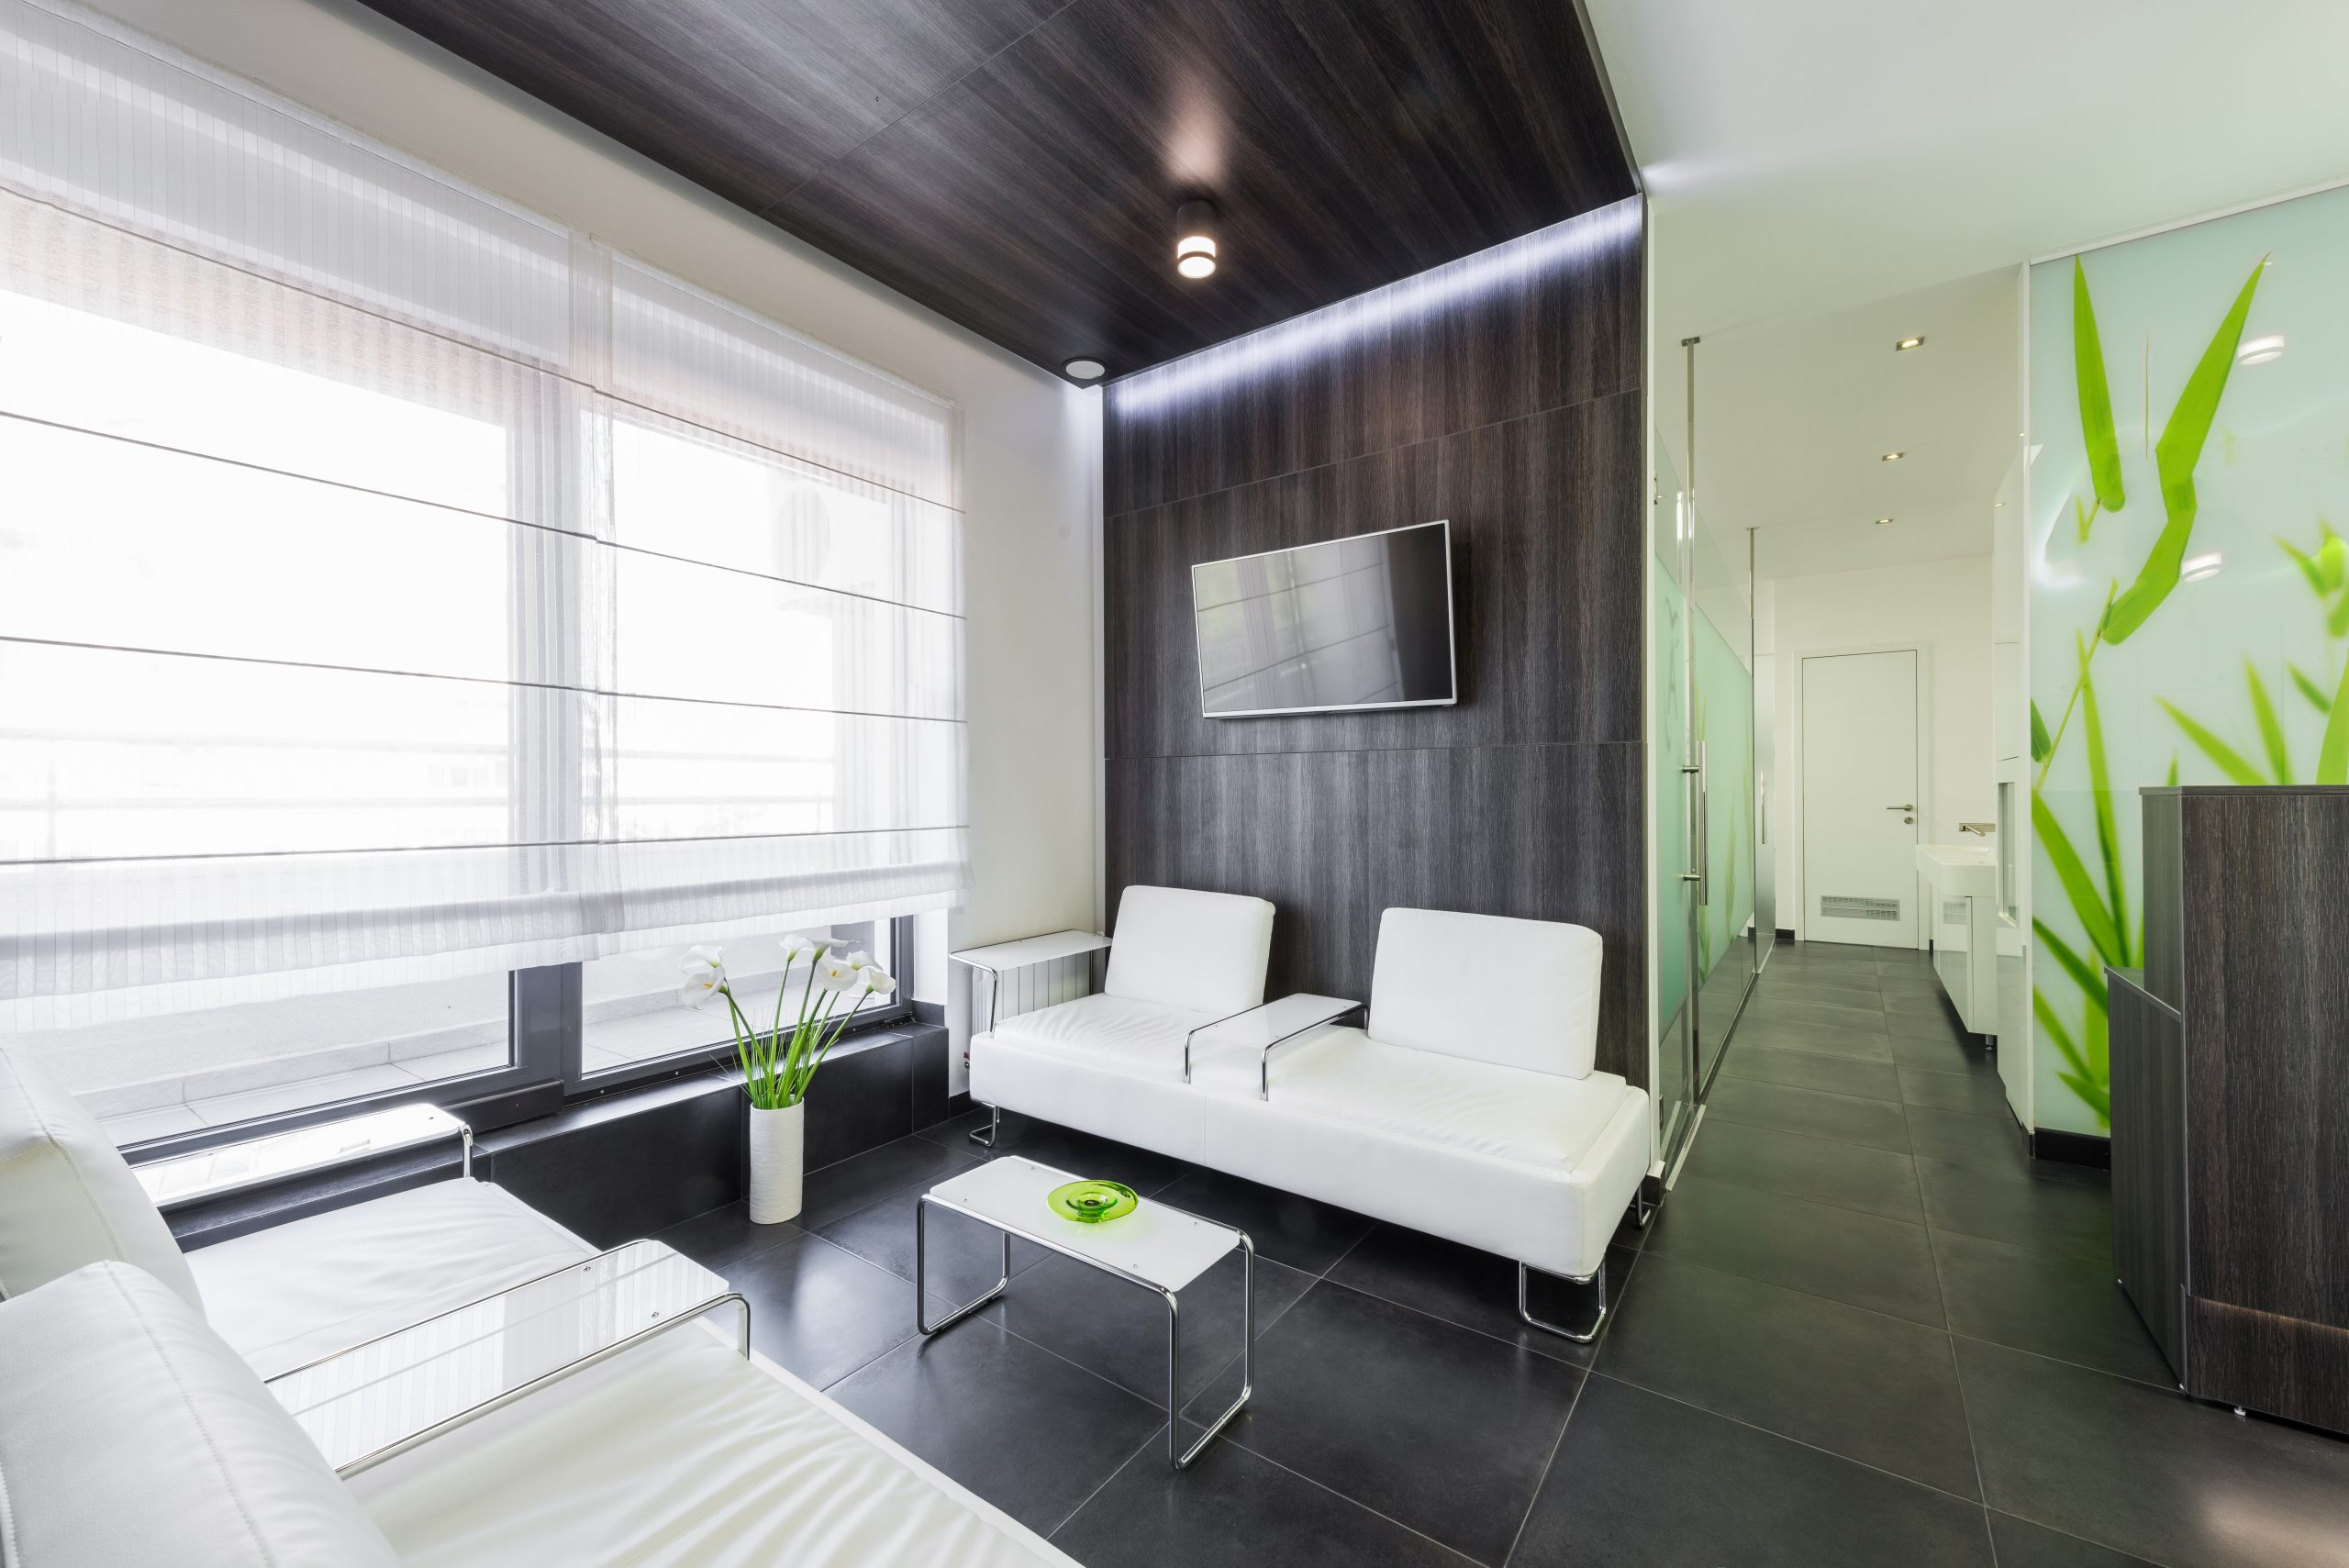 6 Medical Clinic Interior Design Ideas For Comfort Beauty